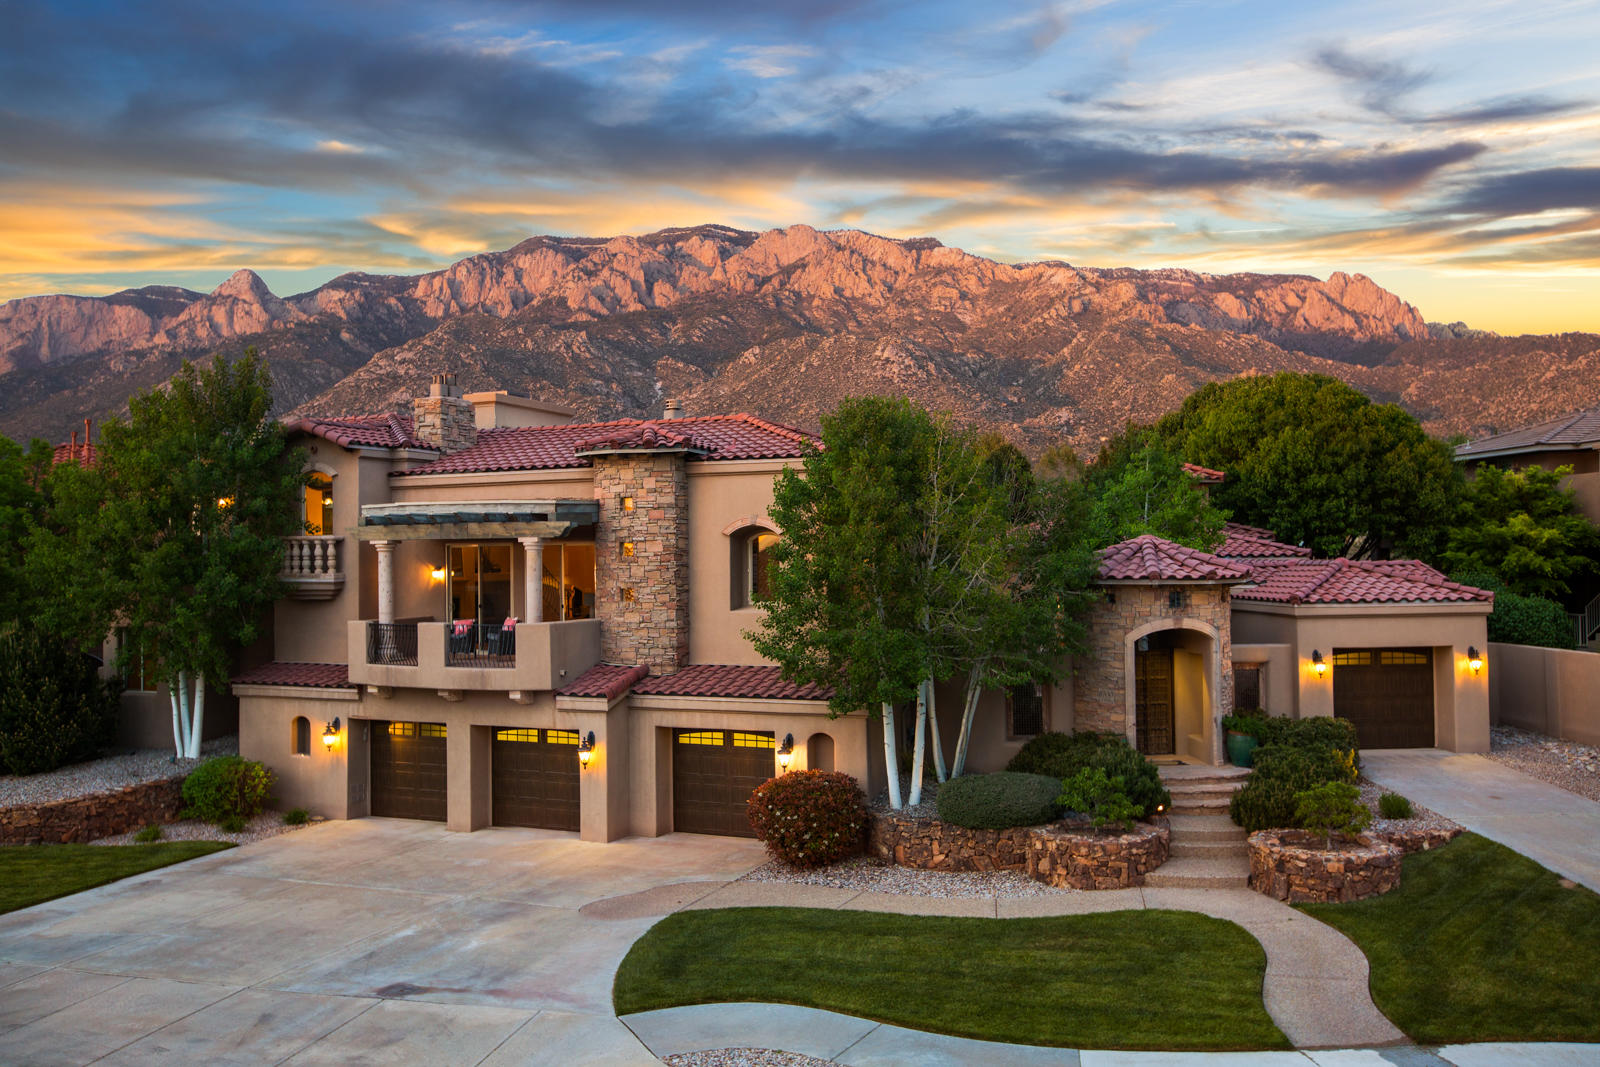 This masterfully built Primrose Pointe home was inspired by the Mediterranean architecture found in Tuscany. Designed and built by Koinonia Homes, this home was the Parade of Homes Award Winner. This spectacular residence is grand in scale yet comfortable. Designed around a beautiful central courtyard, the home and guest house overlook beautiful gardens and spectacular views of the majestic Sandia Mountains & city lights. Reclaimed architectural elements, cantera stone, timeless travertine, rich granite, handcrafted iron, and beautiful woodwork define this great home. Attention to detail is everywhere you look. Inviting floorplan offers 2 master suites and a third bedroom in the main house, and a fully appointed guest house with another bedroom suite, kitchenette, living, dining & garage.